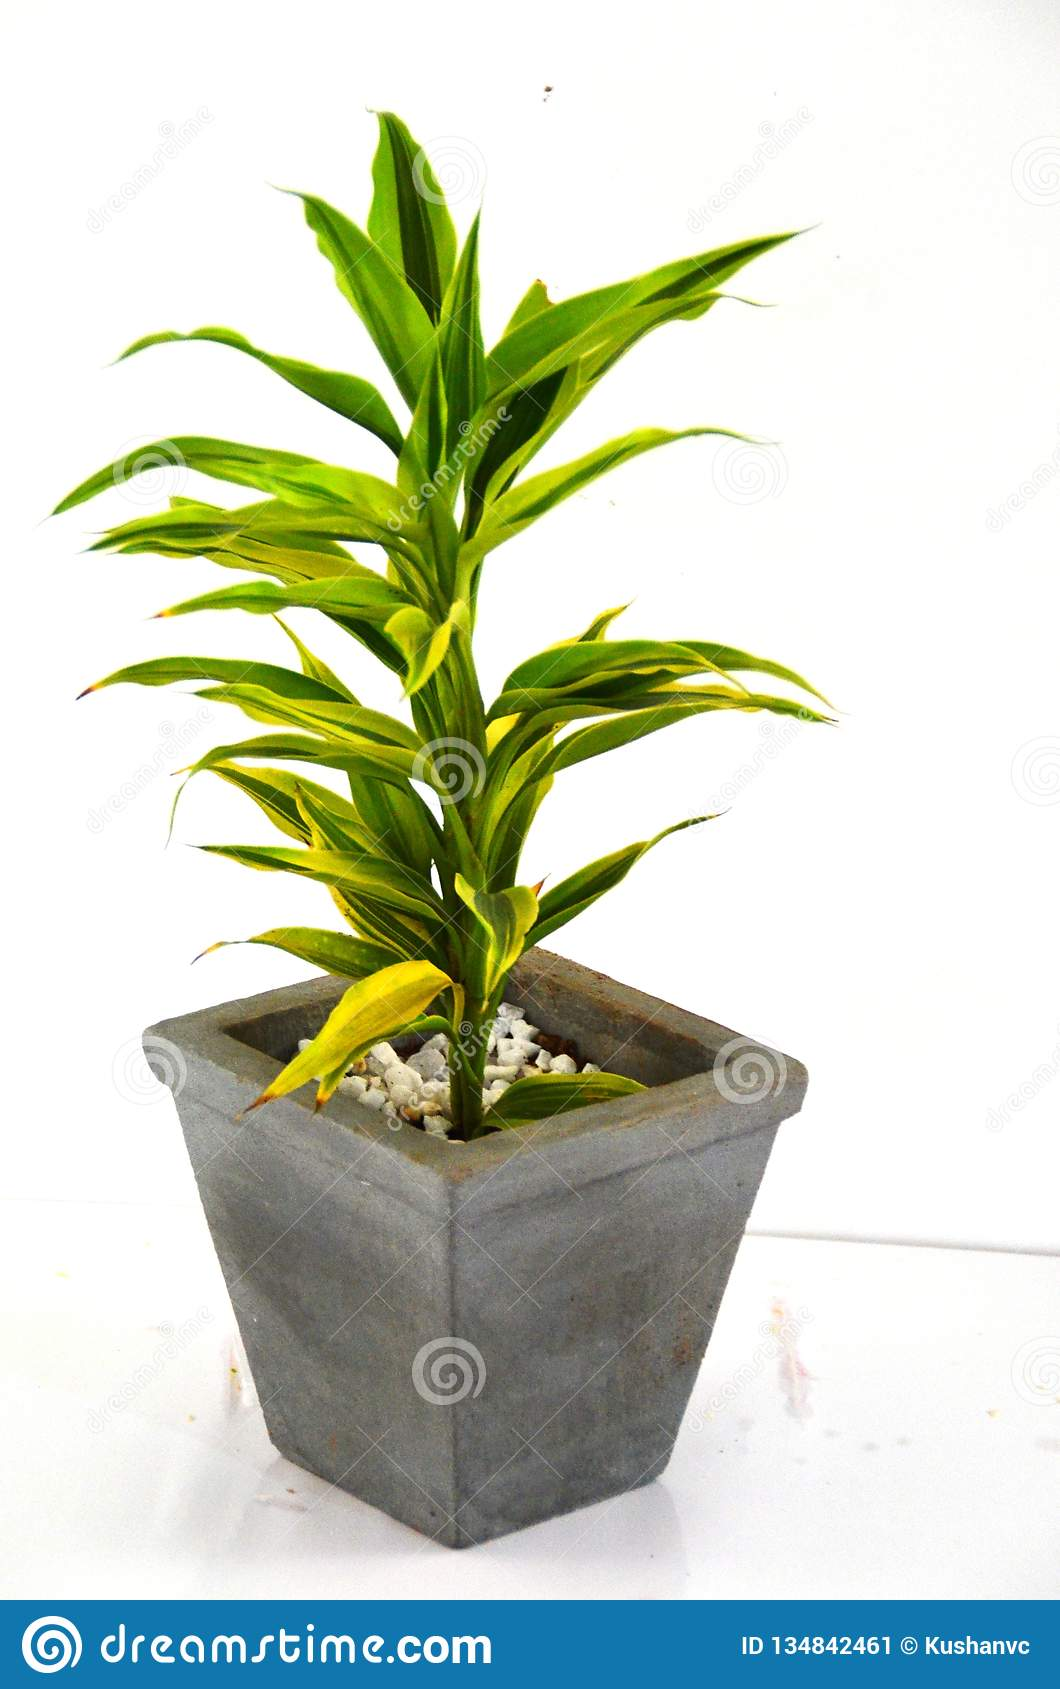 Lucky - Bamboo Plant - Indoor Plant Stock Image - Image of